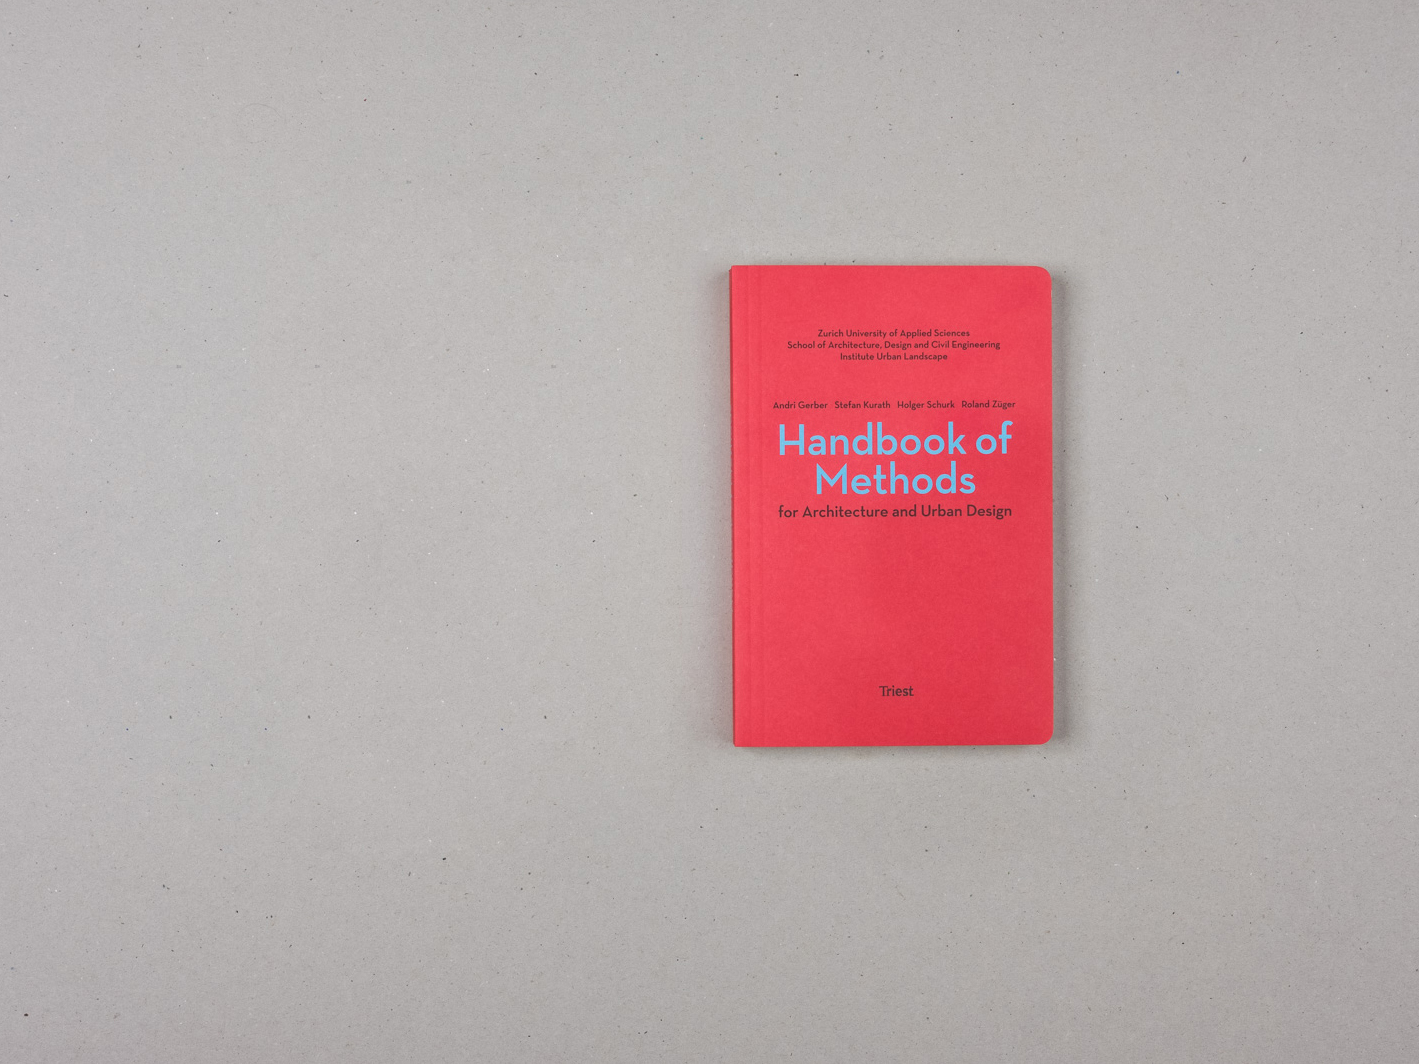 Handbook of Methods for Architecture and Urban Design - 0